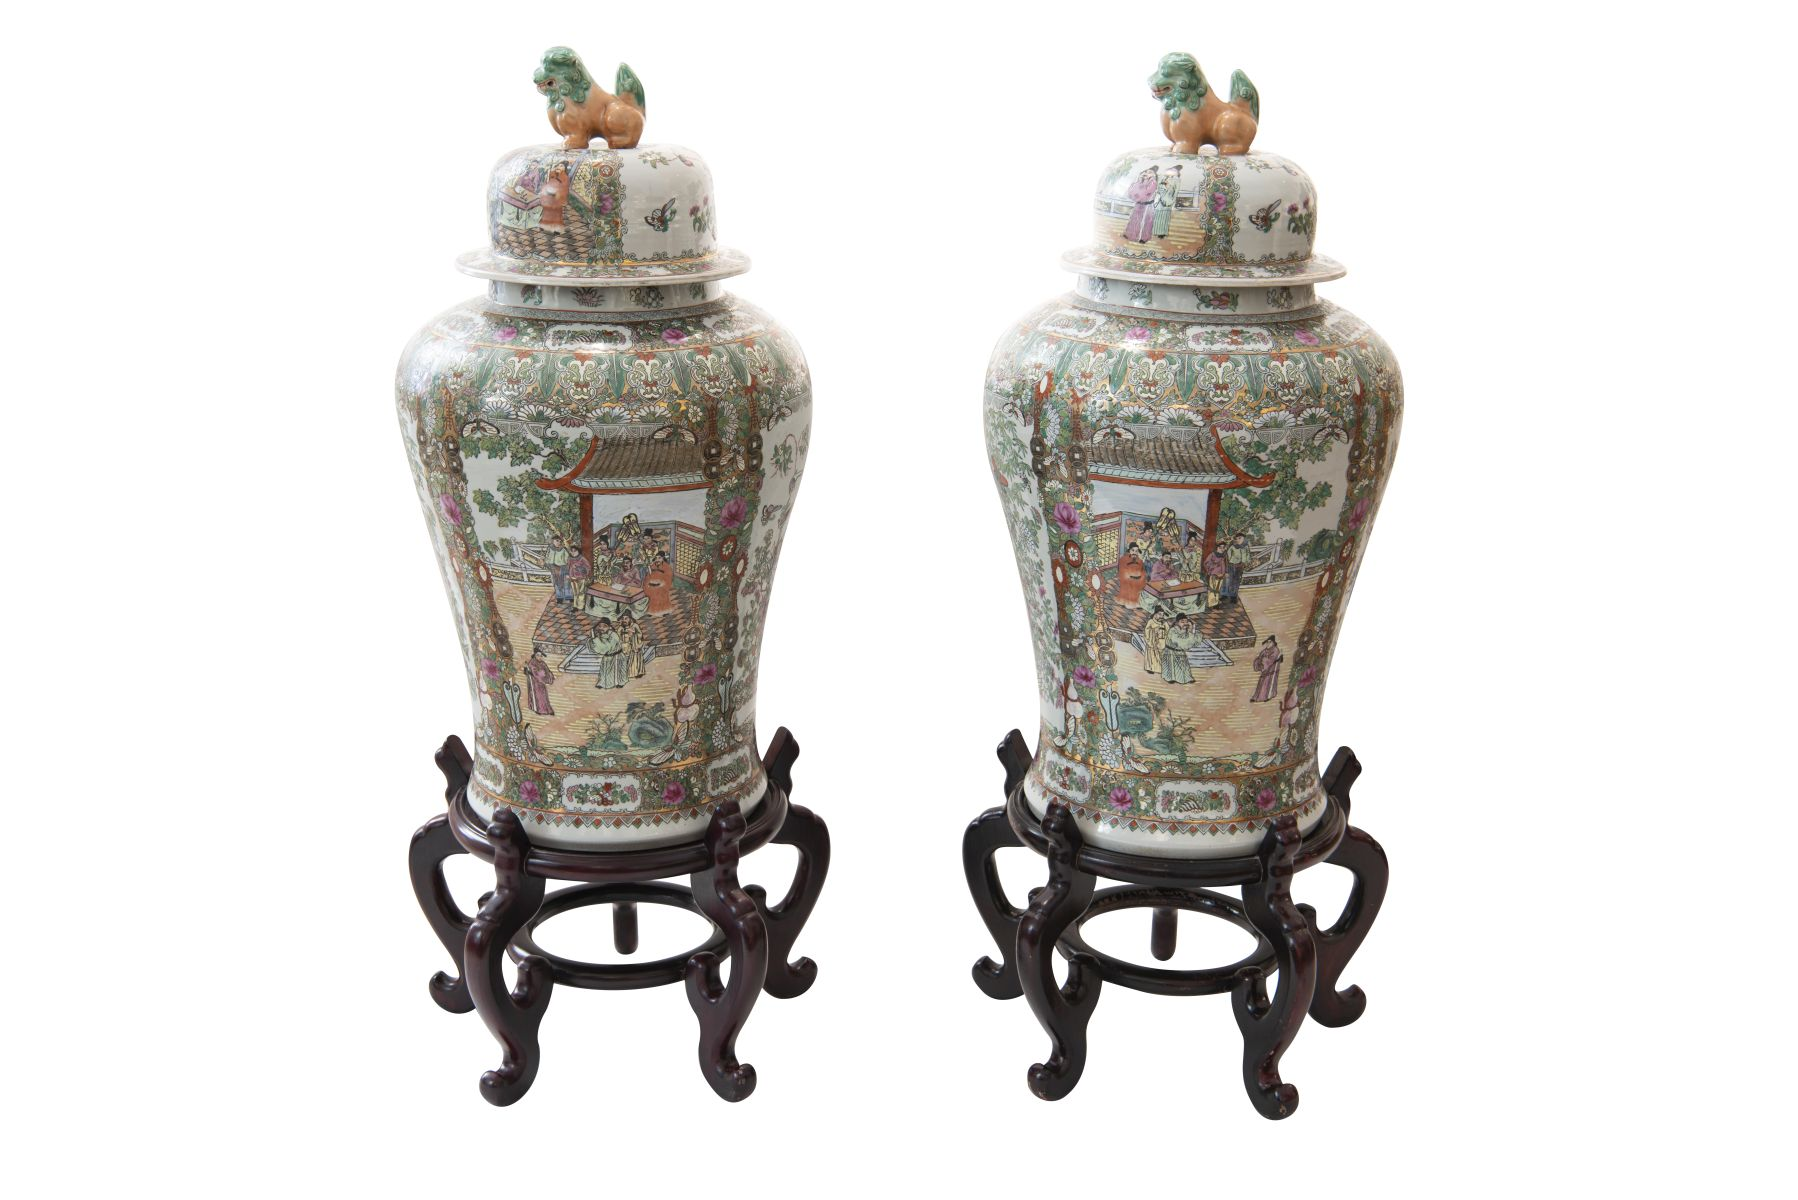 #173 Pair of Chinese lidded vases | Paar Chinessiche Deckelvasen Image